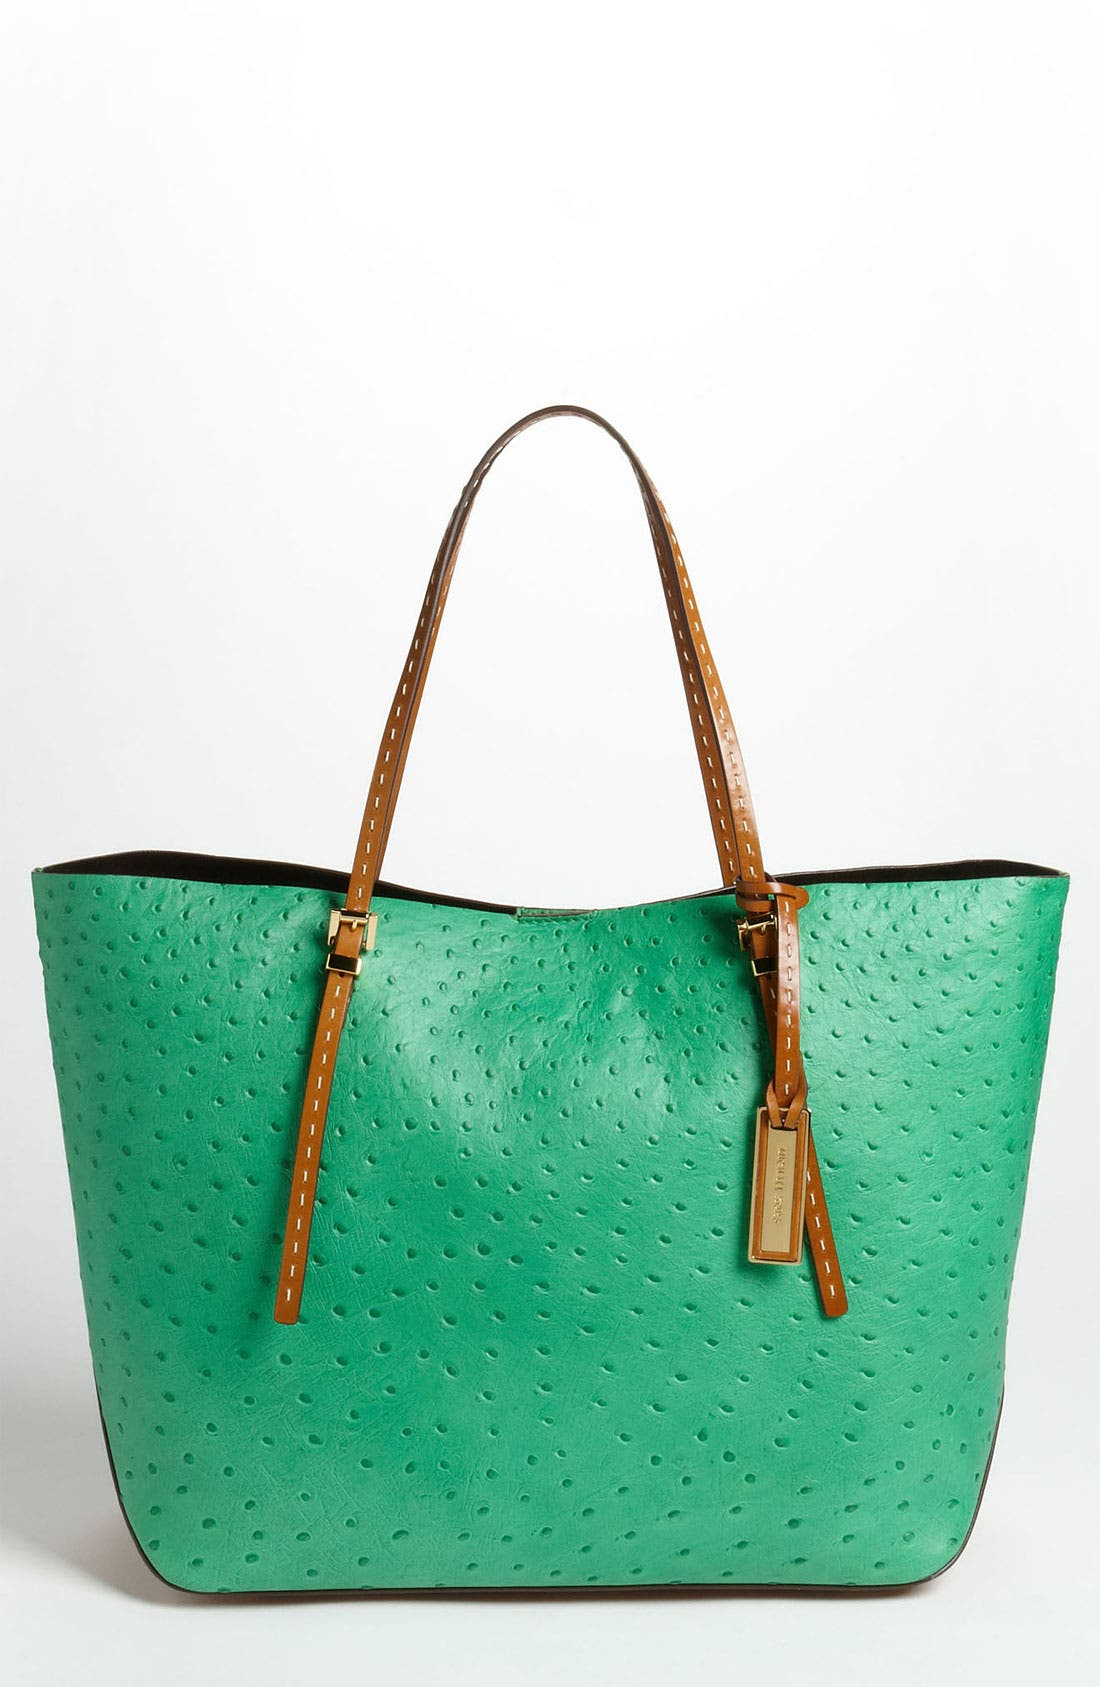 Main Image - Michael Kors 'Gia' Ostrich Embossed Tote